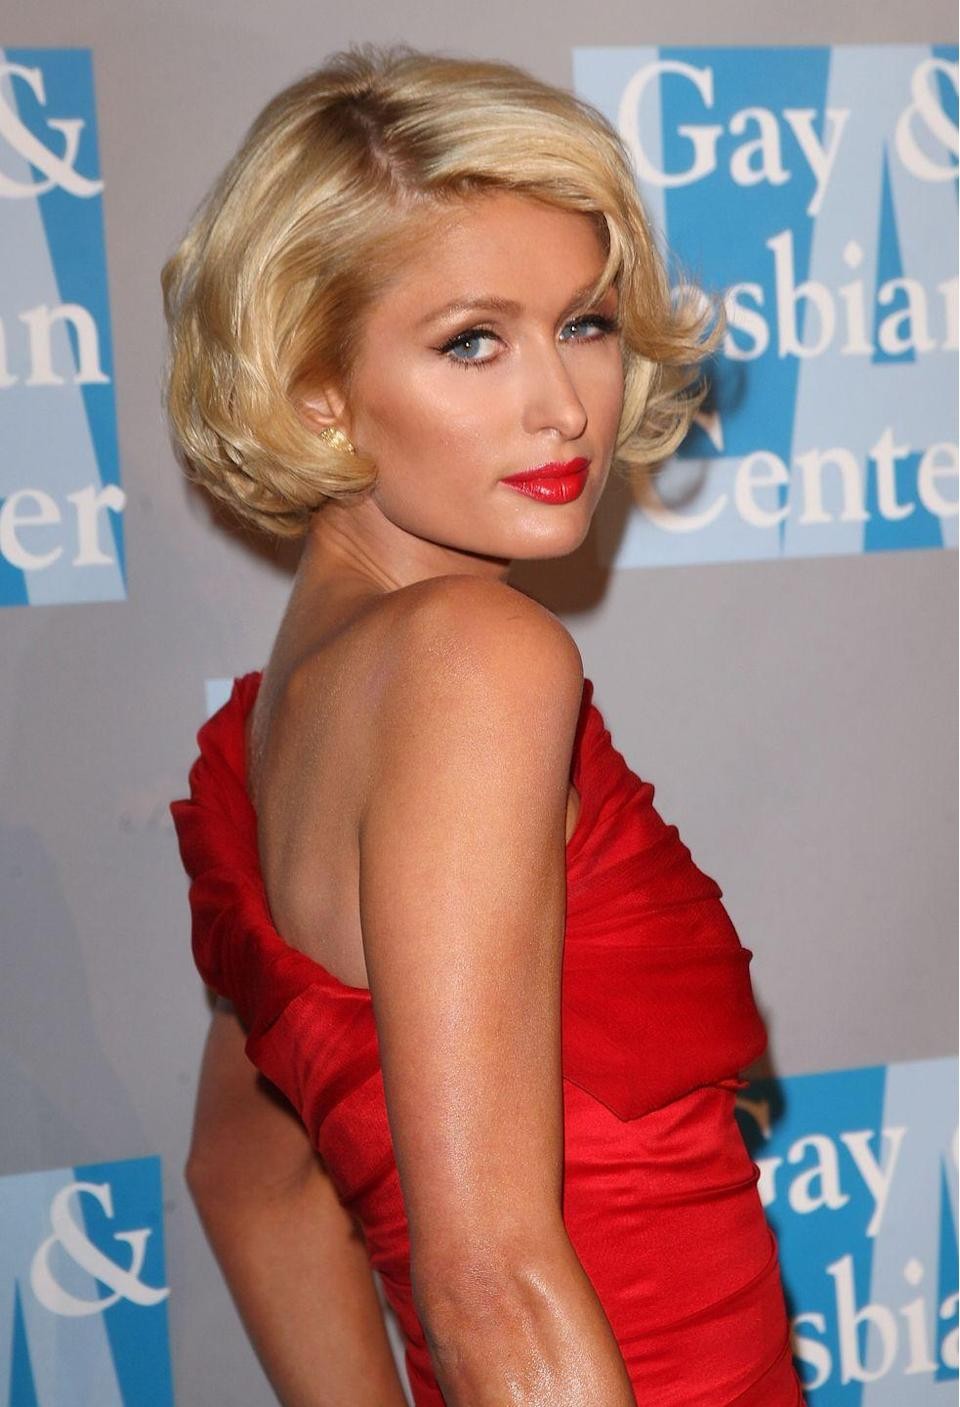 <p>Socialite <strong>Paris Hilton's </strong>asymmetrical bob was styled into long waves and a side part to create an even more off-balanced, yet high-glamour look.</p>